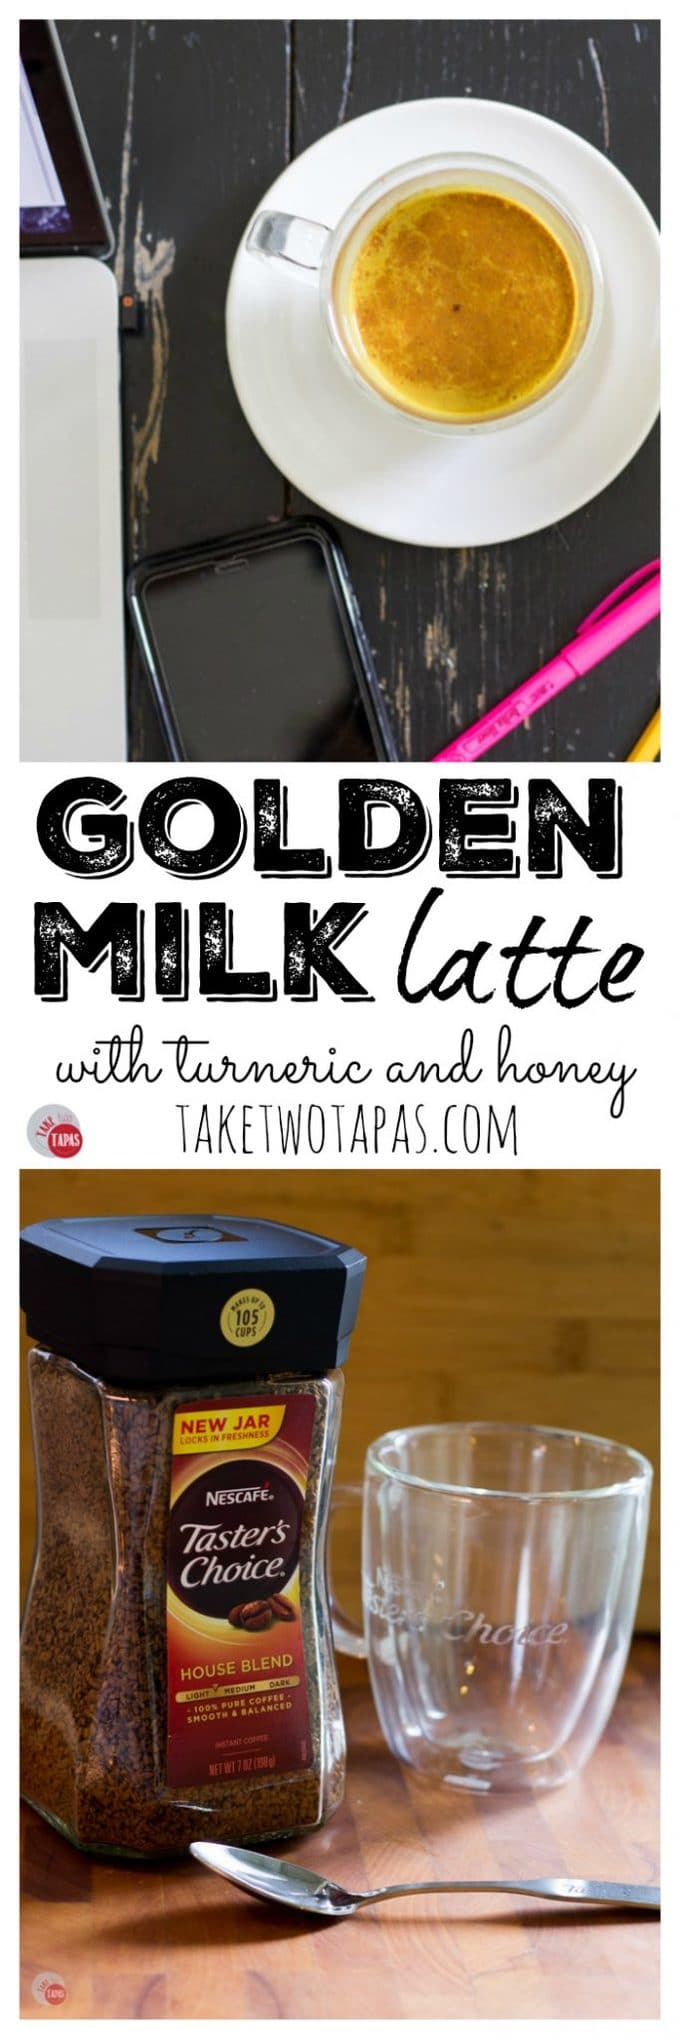 """Pinterest collage image with text """"golden milk latte with turmeric and honey"""""""